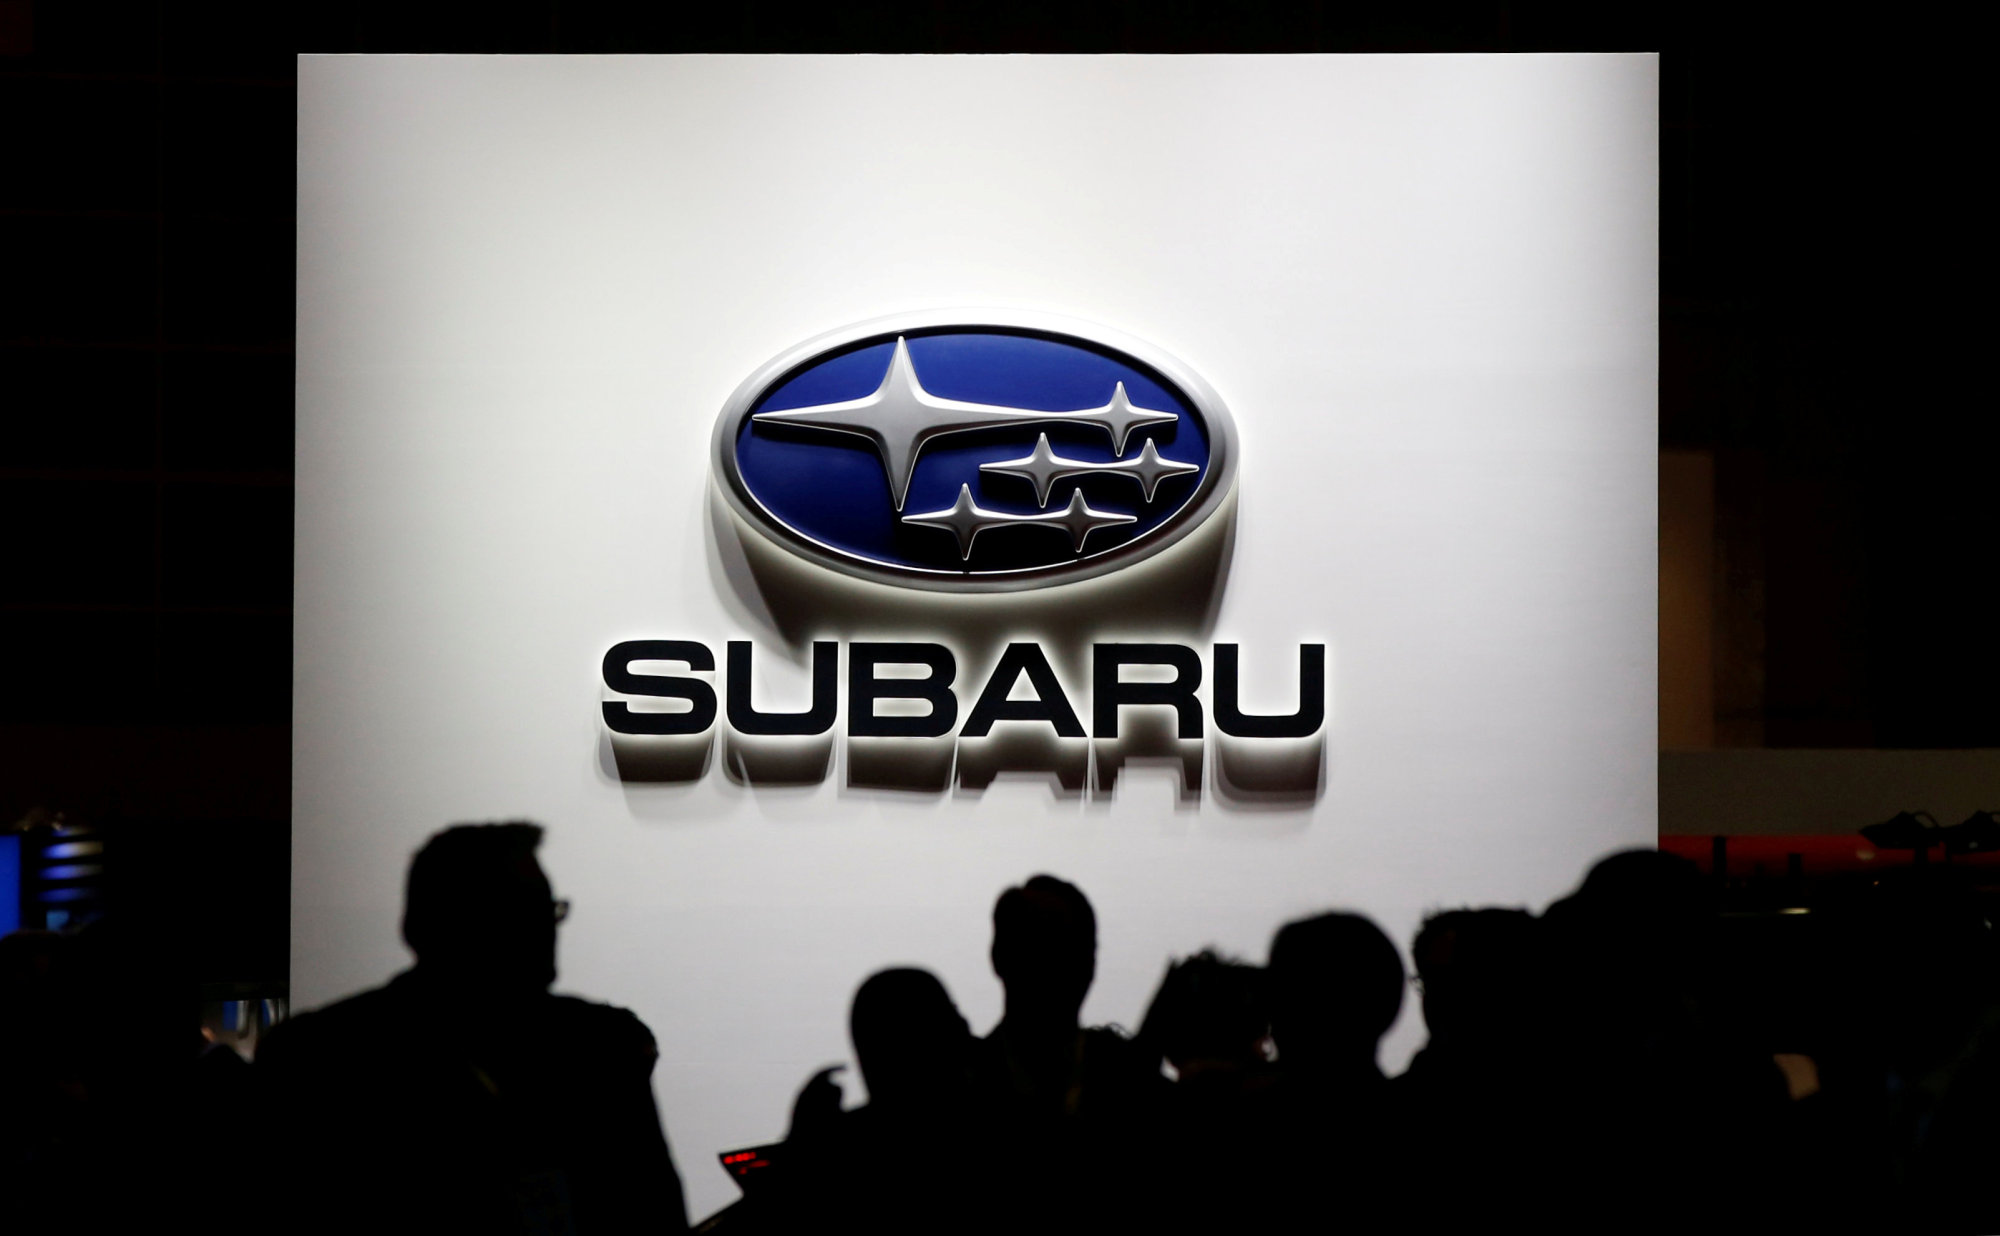 Subaru Corp. on Monday revised its forecast for group earnings downward for the current business year through next March as it grapples with an inspection scandal. | REUTERS